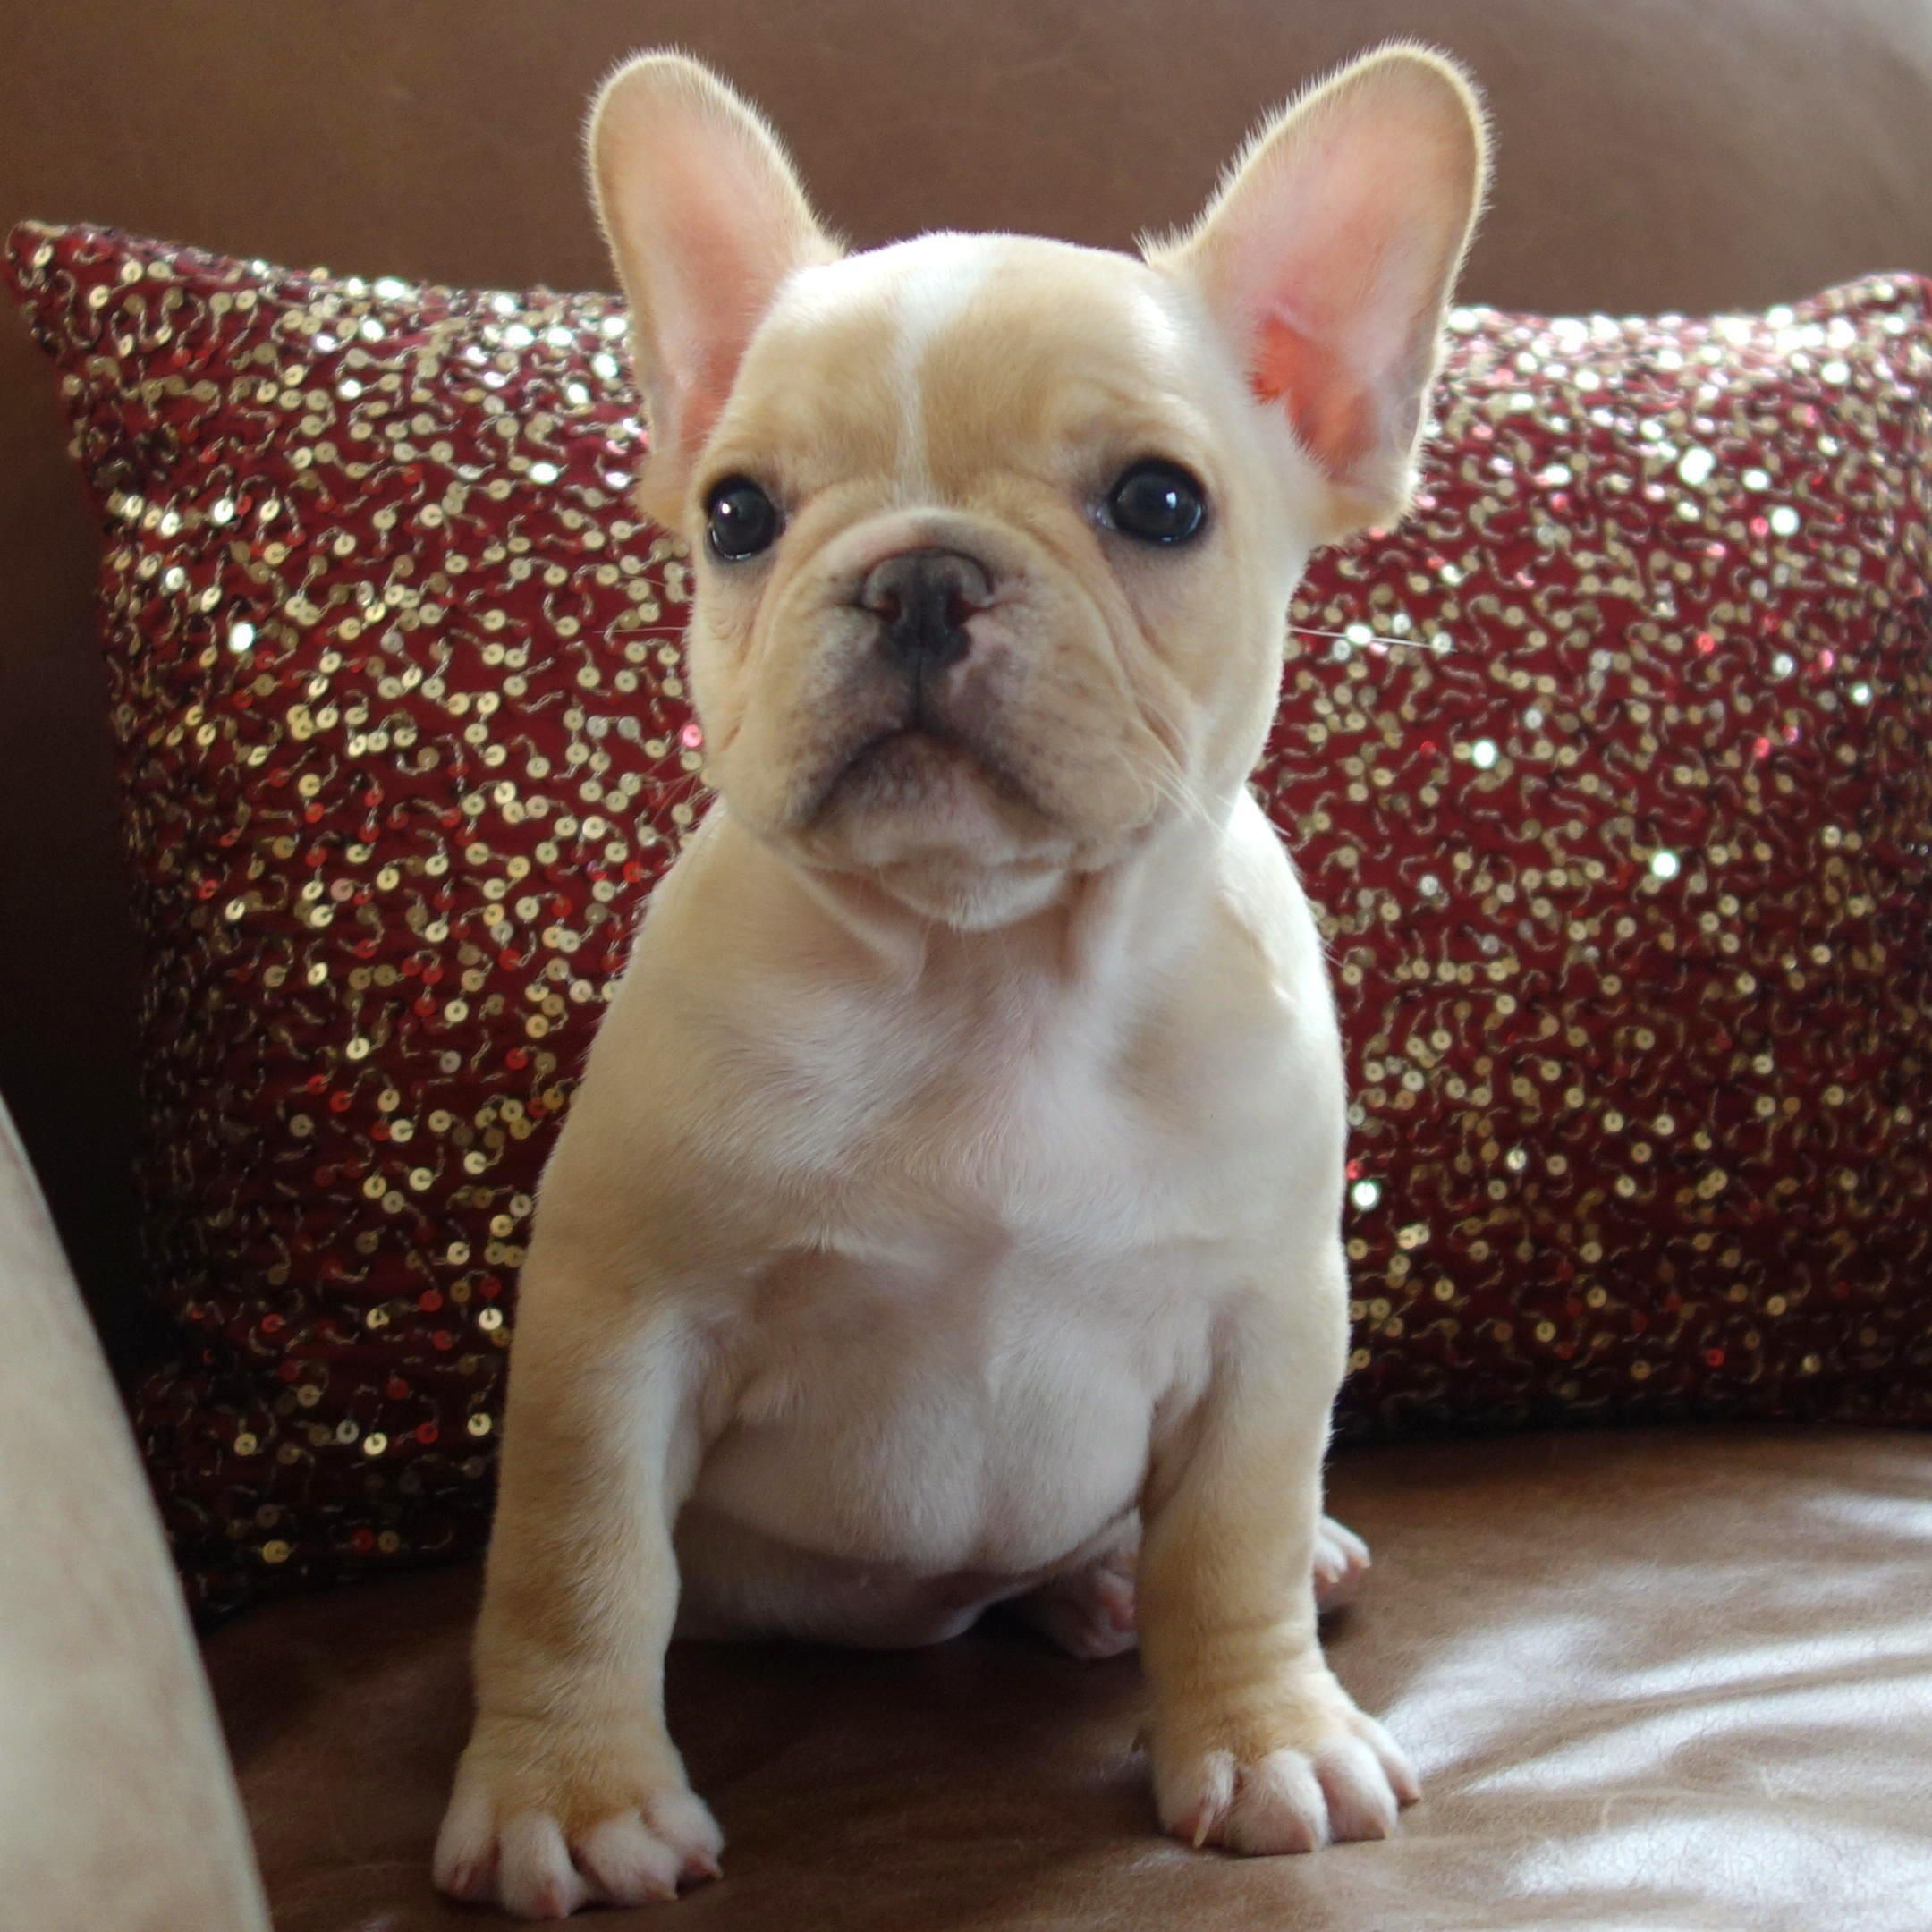 cream colored french bulldog puppies for sale – from the thousands